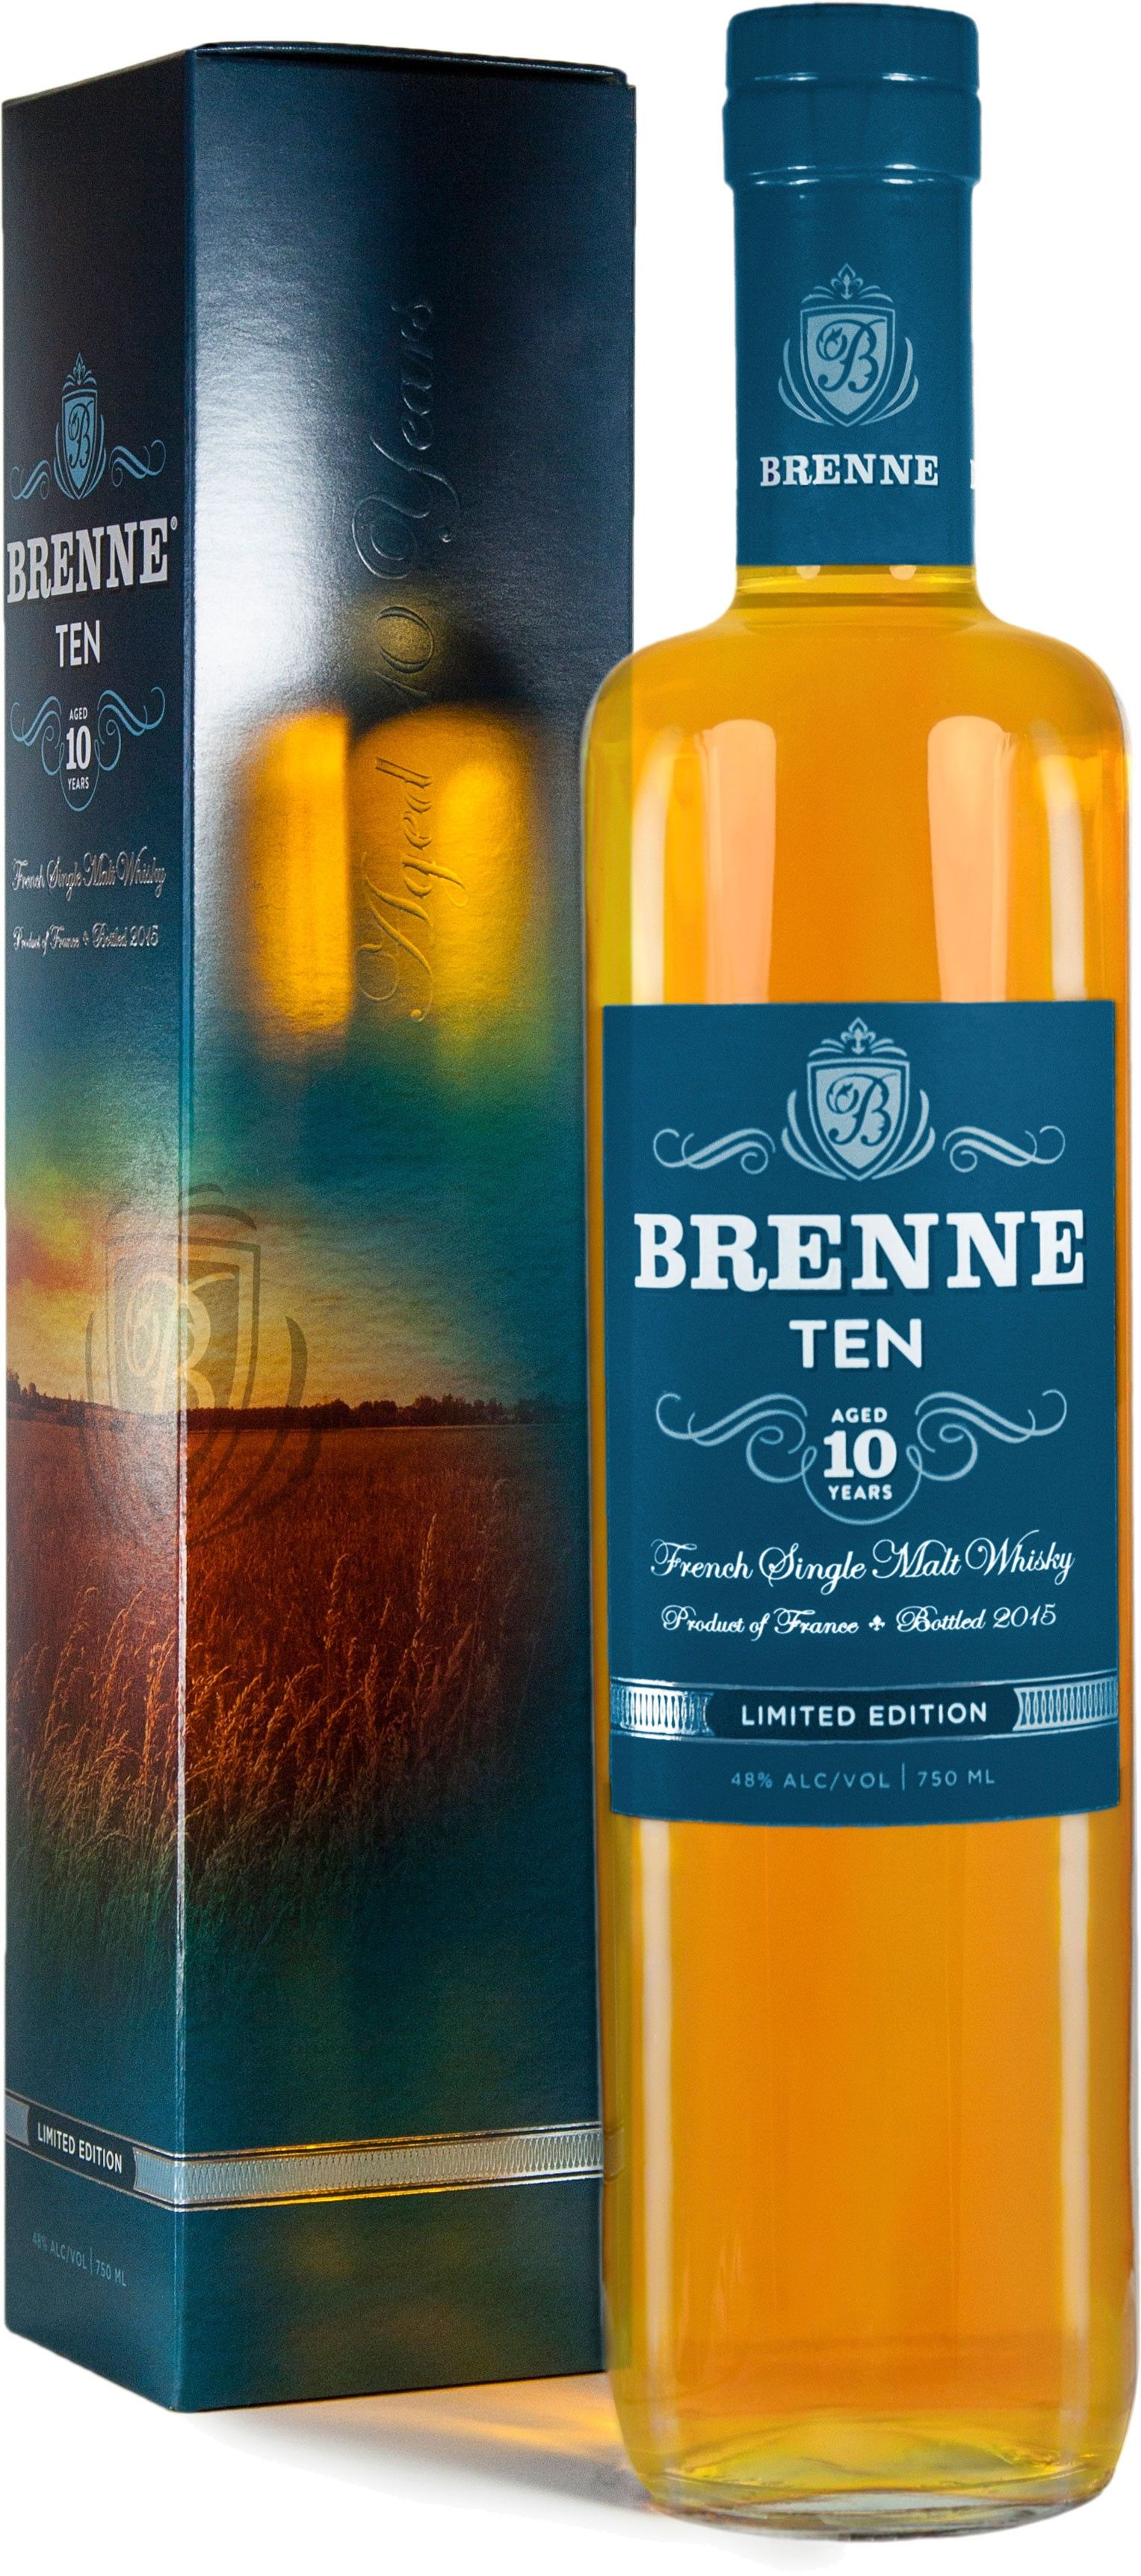 Brenne 10 Year Old French Single Malt Whisky Malt Whisky Single Malt Single Malt Whisky